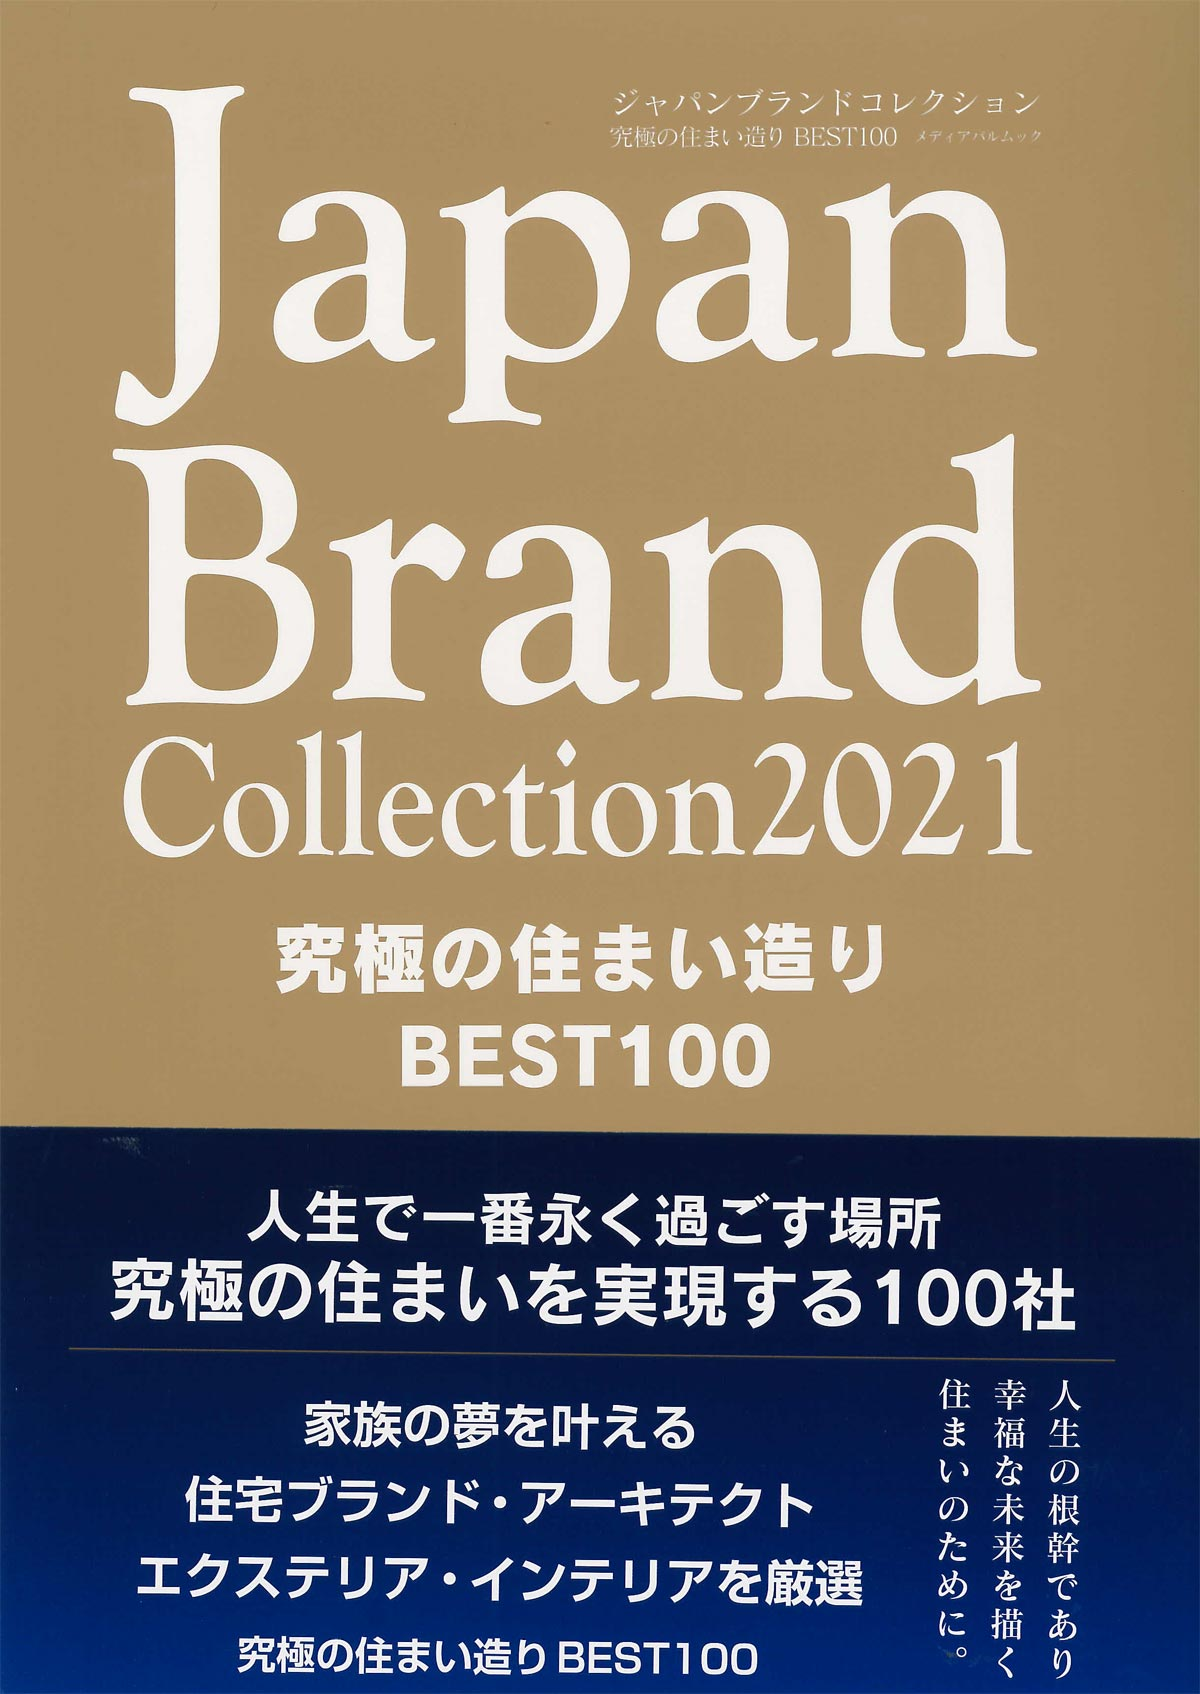 Japan Brand Collection 2021 究極の住まい造りBEST100